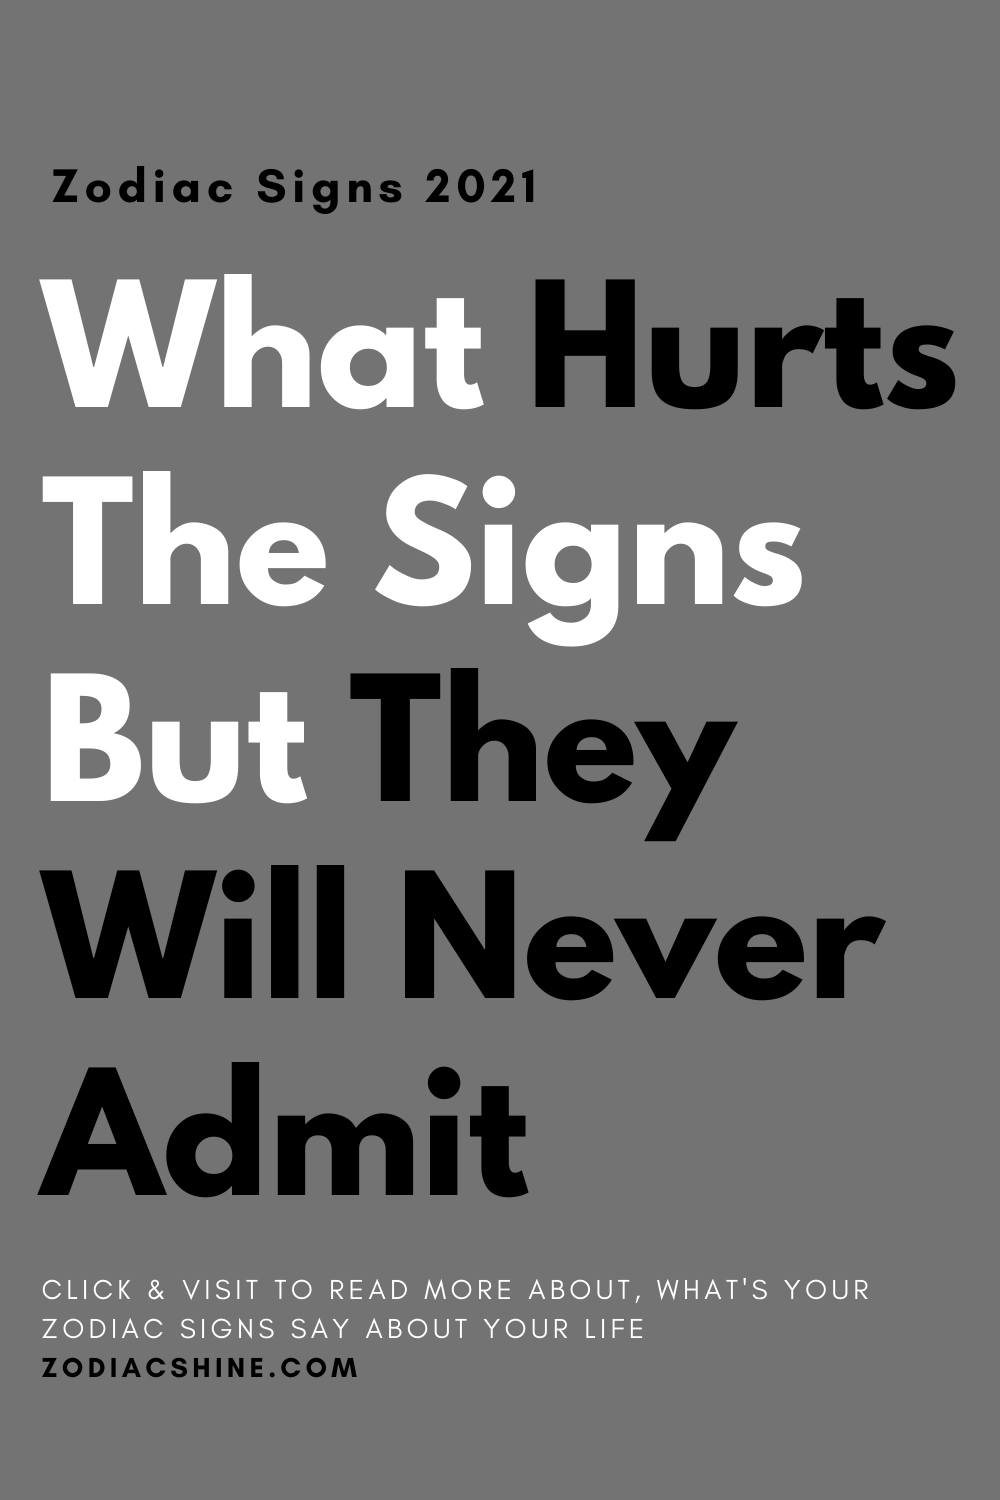 What Hurts The Signs But They Will Never Admit